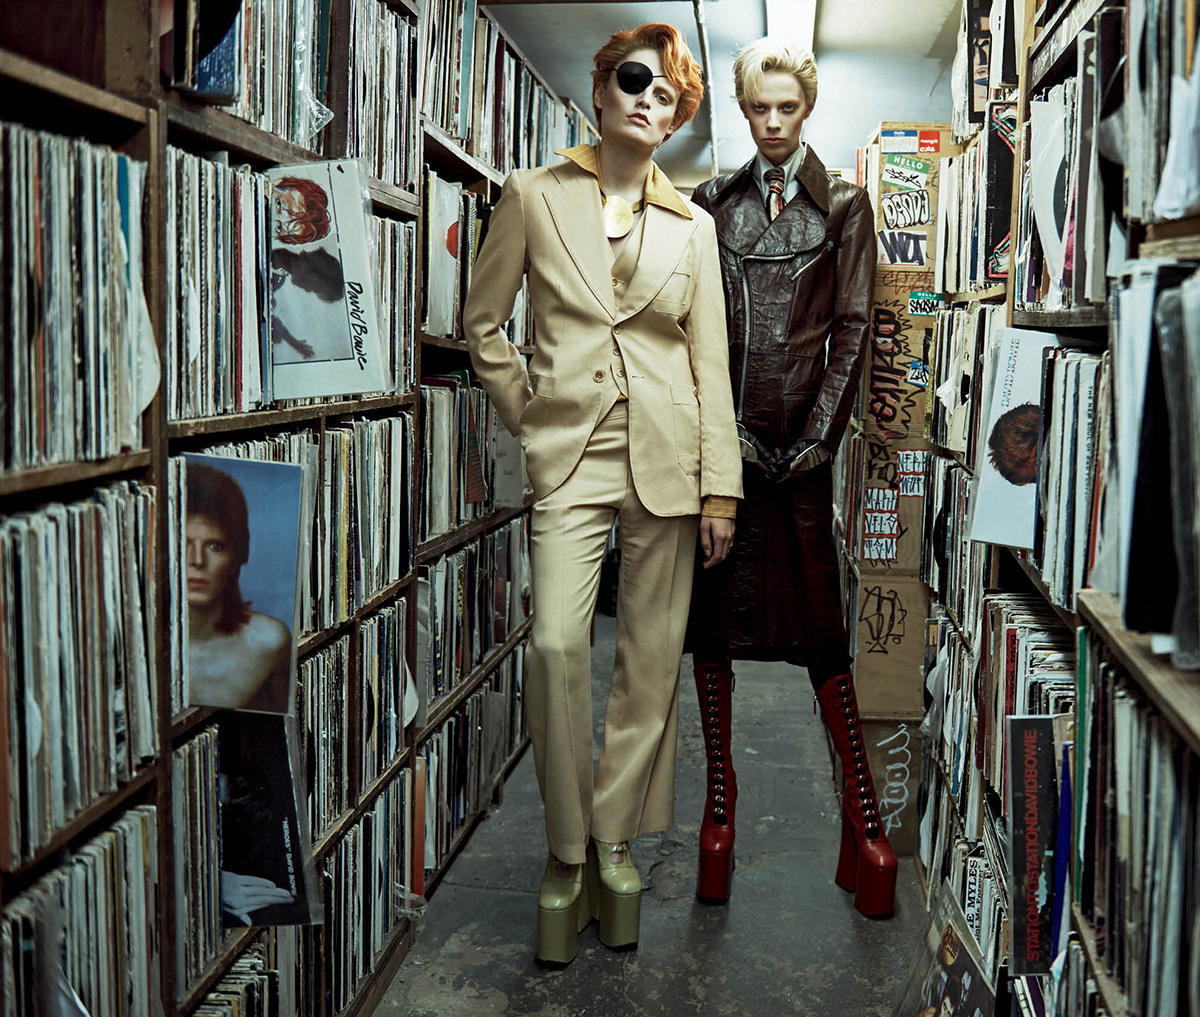 THE BASEMENT DAVID BOWIE | Hanne Gaby Odiele & Lexi Boling